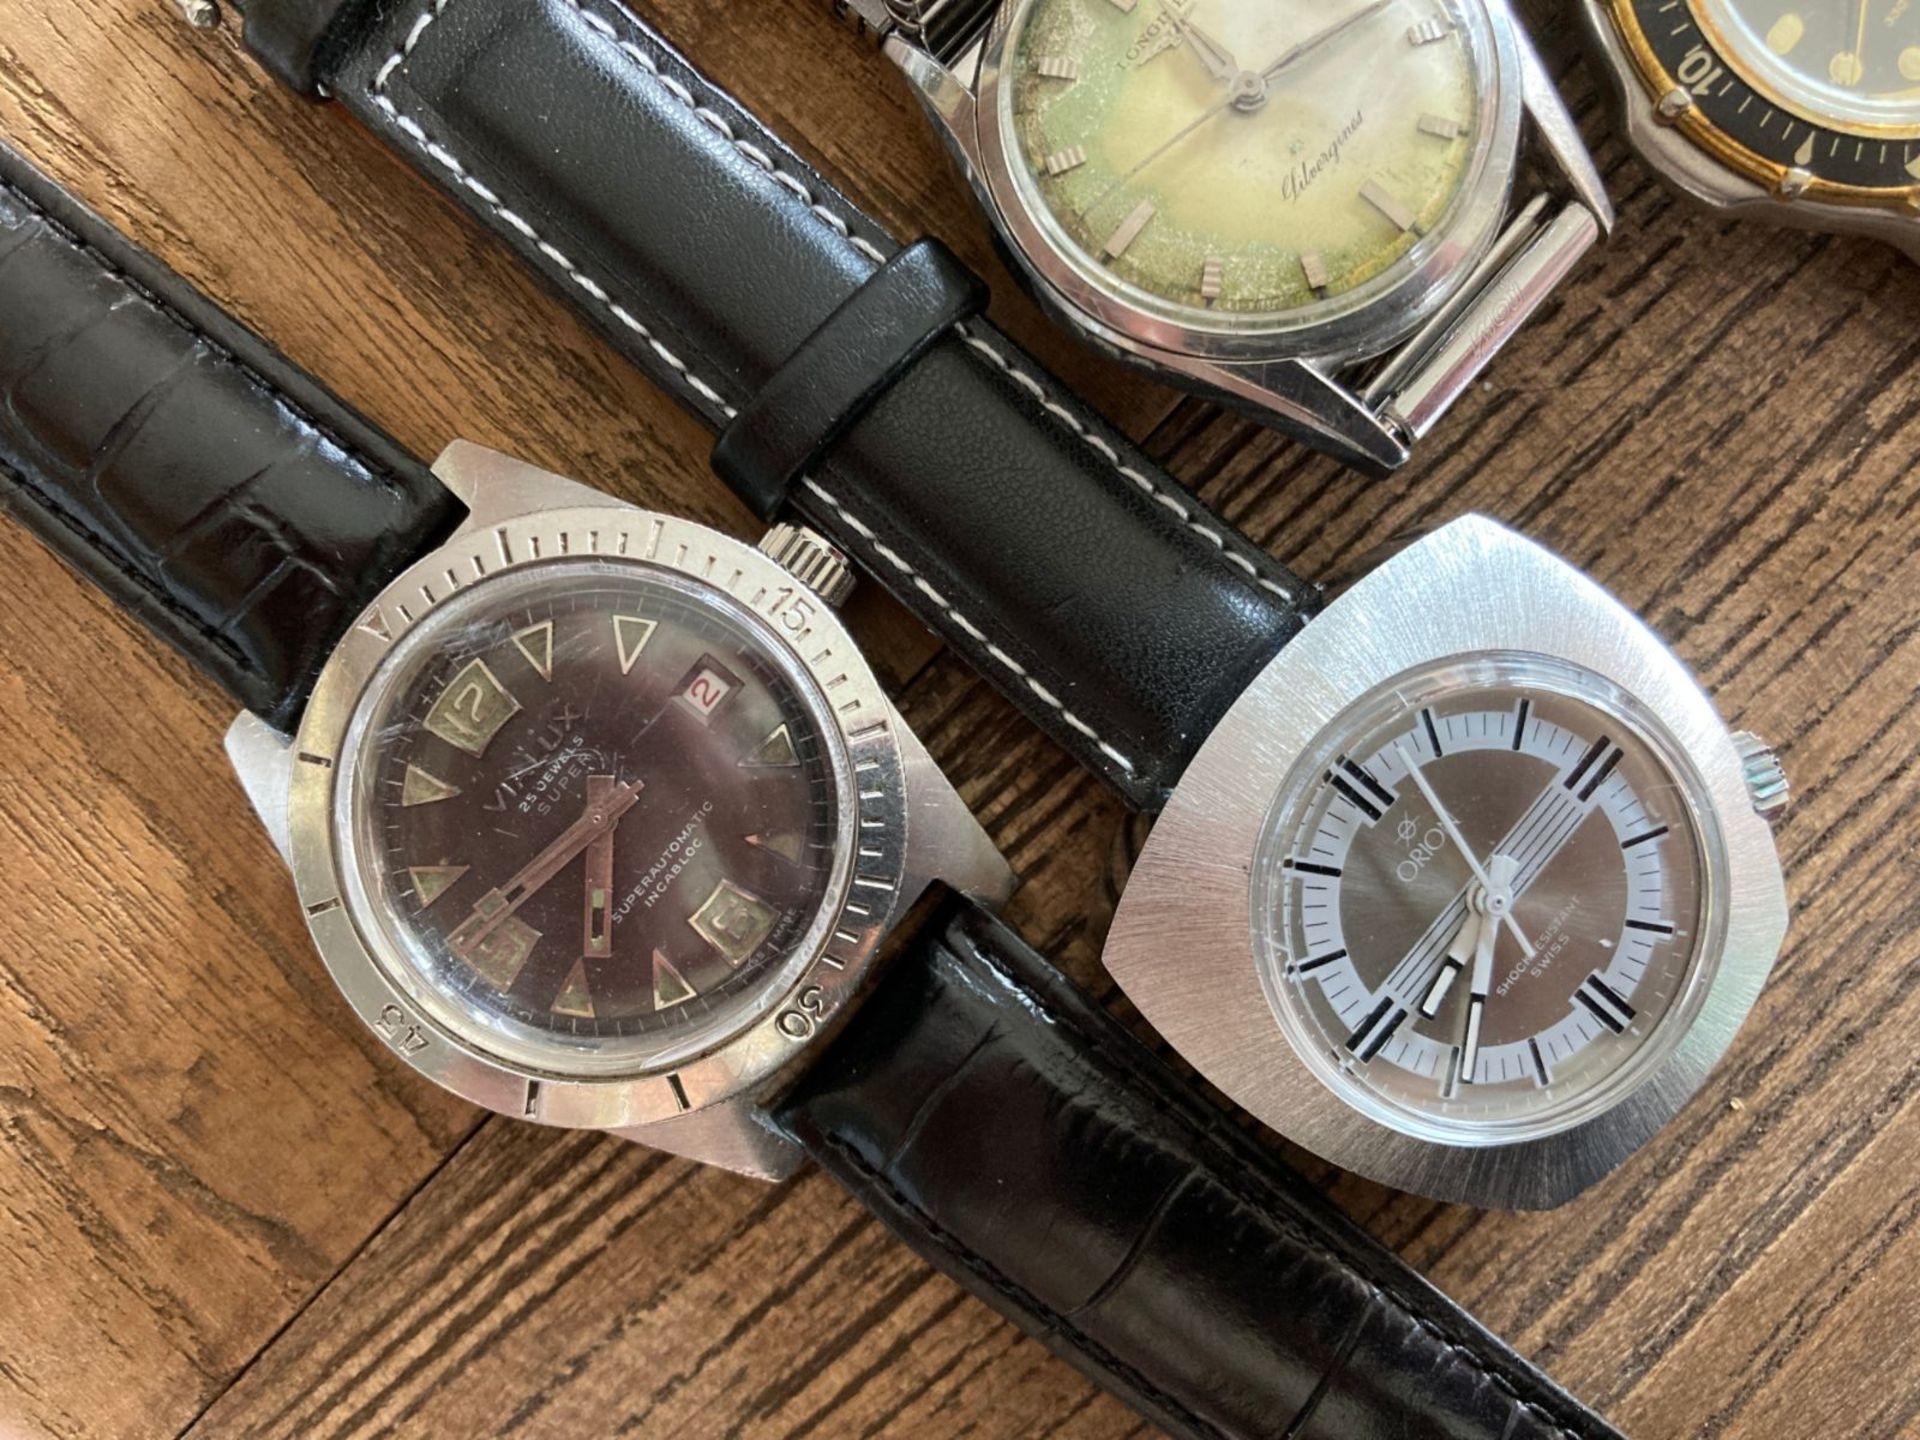 MIXED WATCHES INC LONGINES, ORION, VIALUX - Image 3 of 3